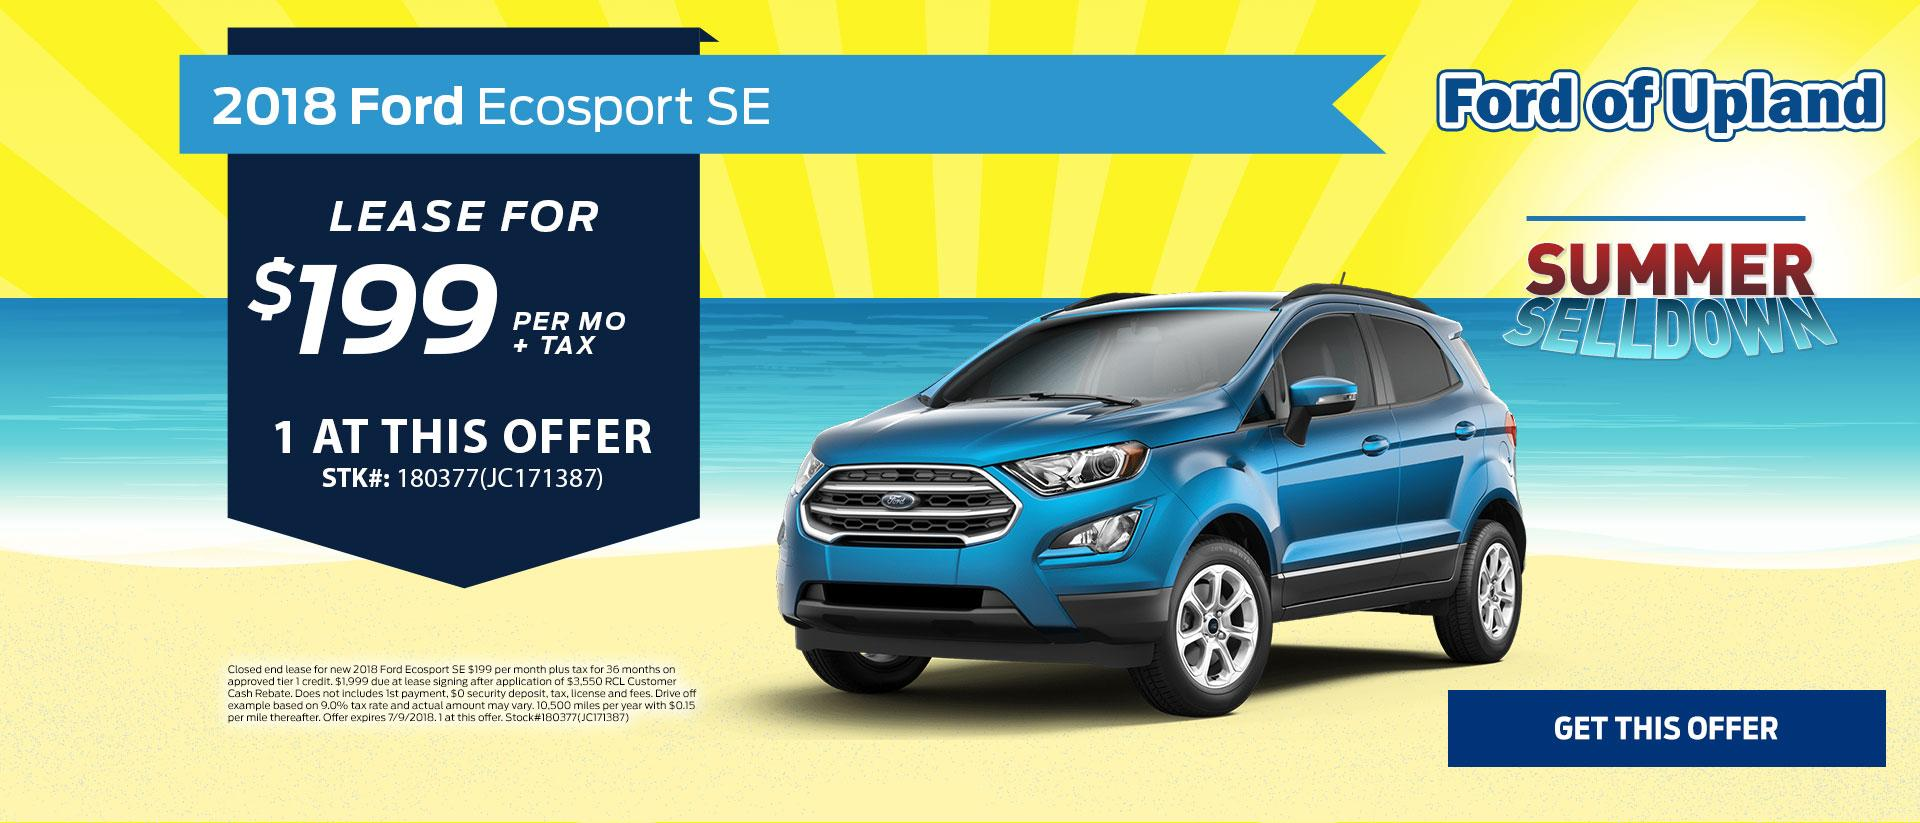 2018 Ecosport Lease Offer